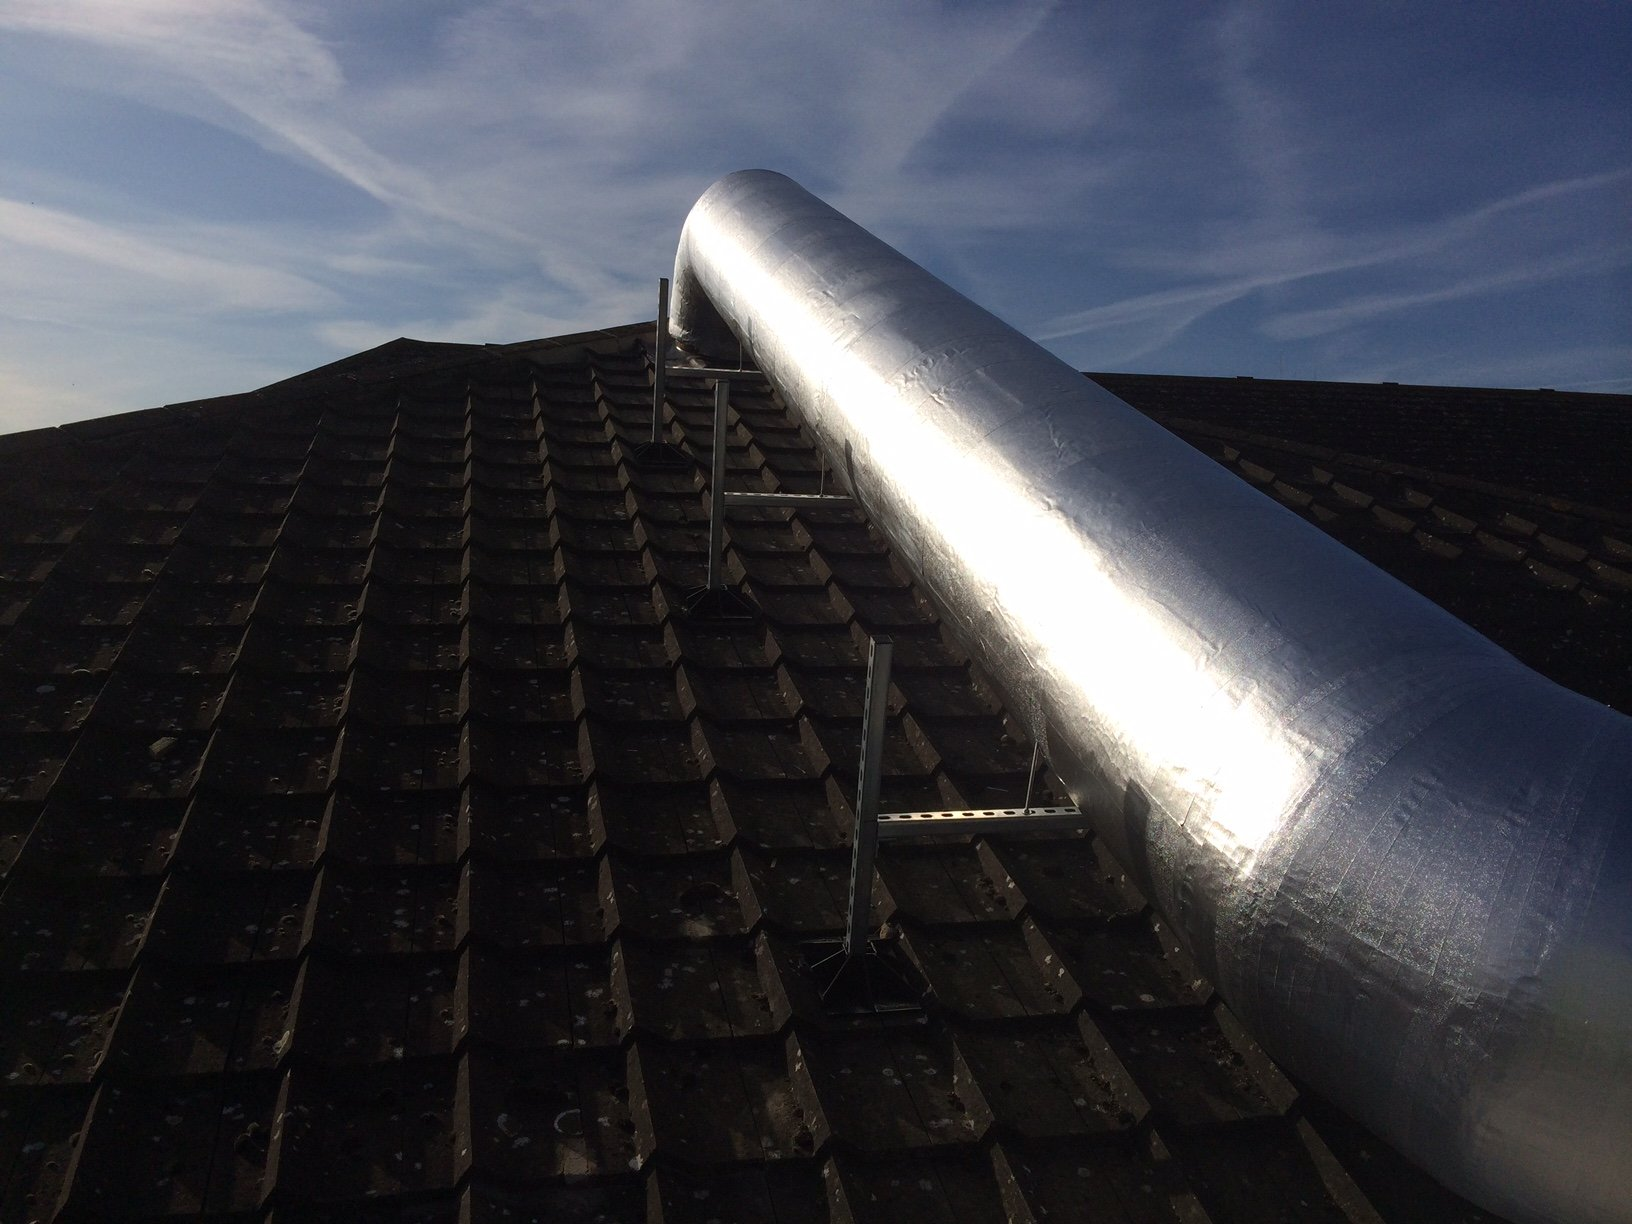 duct on the roofing